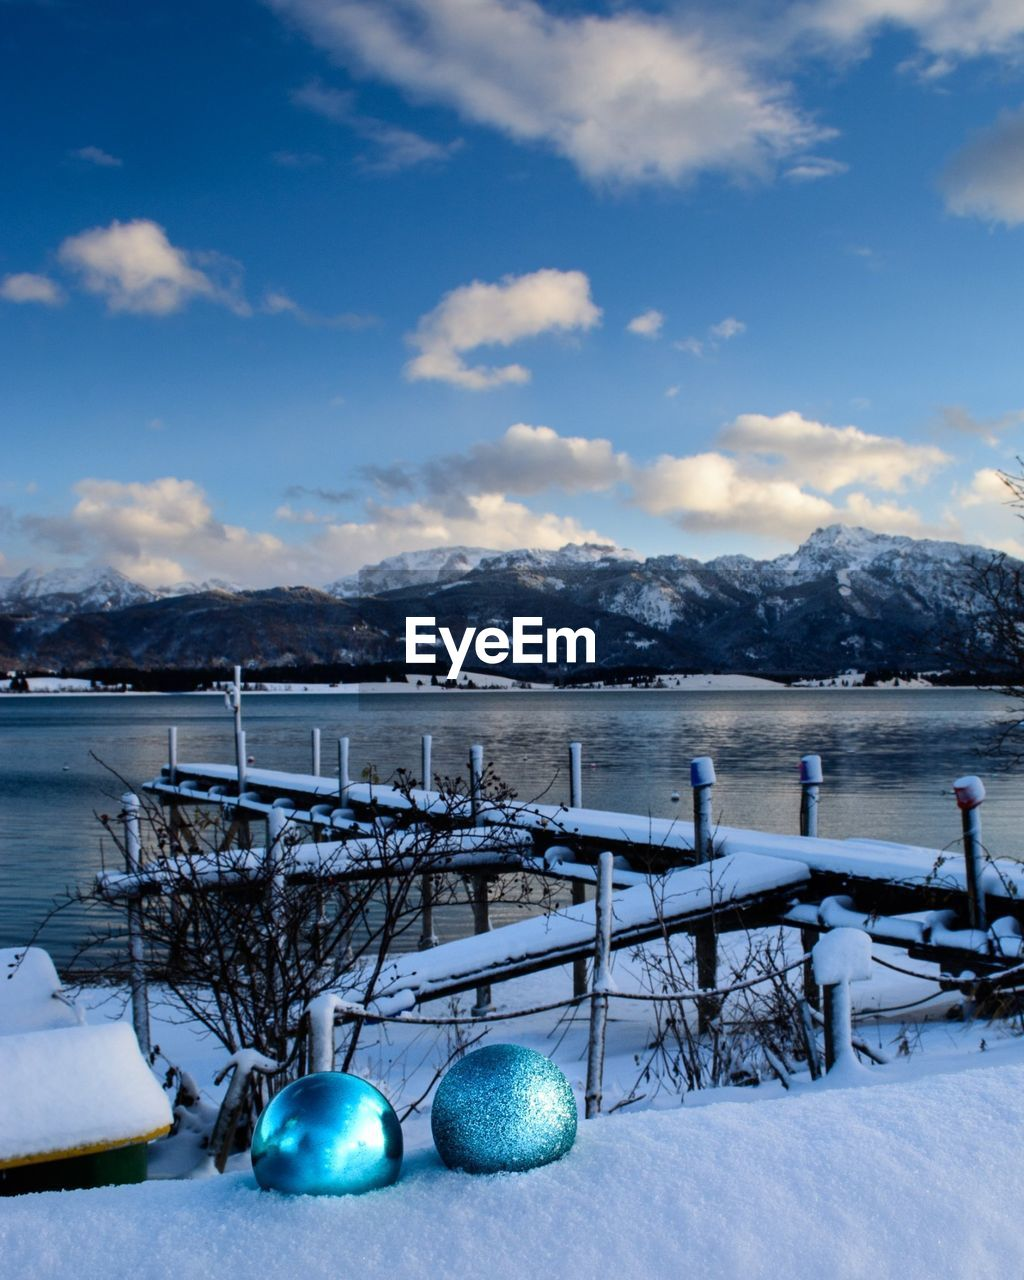 snow, winter, cold temperature, mountain, sky, cloud - sky, scenics - nature, nature, beauty in nature, no people, day, blue, water, tranquil scene, land, railing, non-urban scene, tranquility, holiday, outdoors, snowcapped mountain